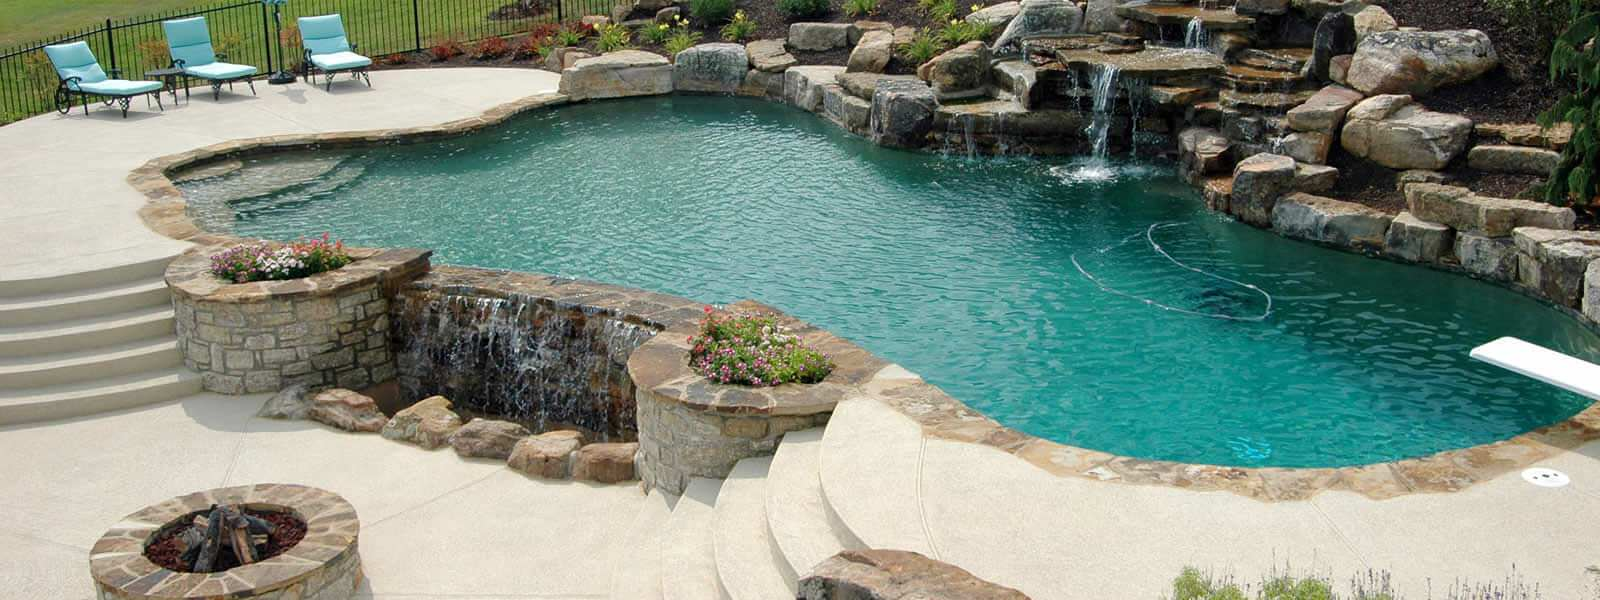 Gorgeous looking pool deck… Beat the heat!